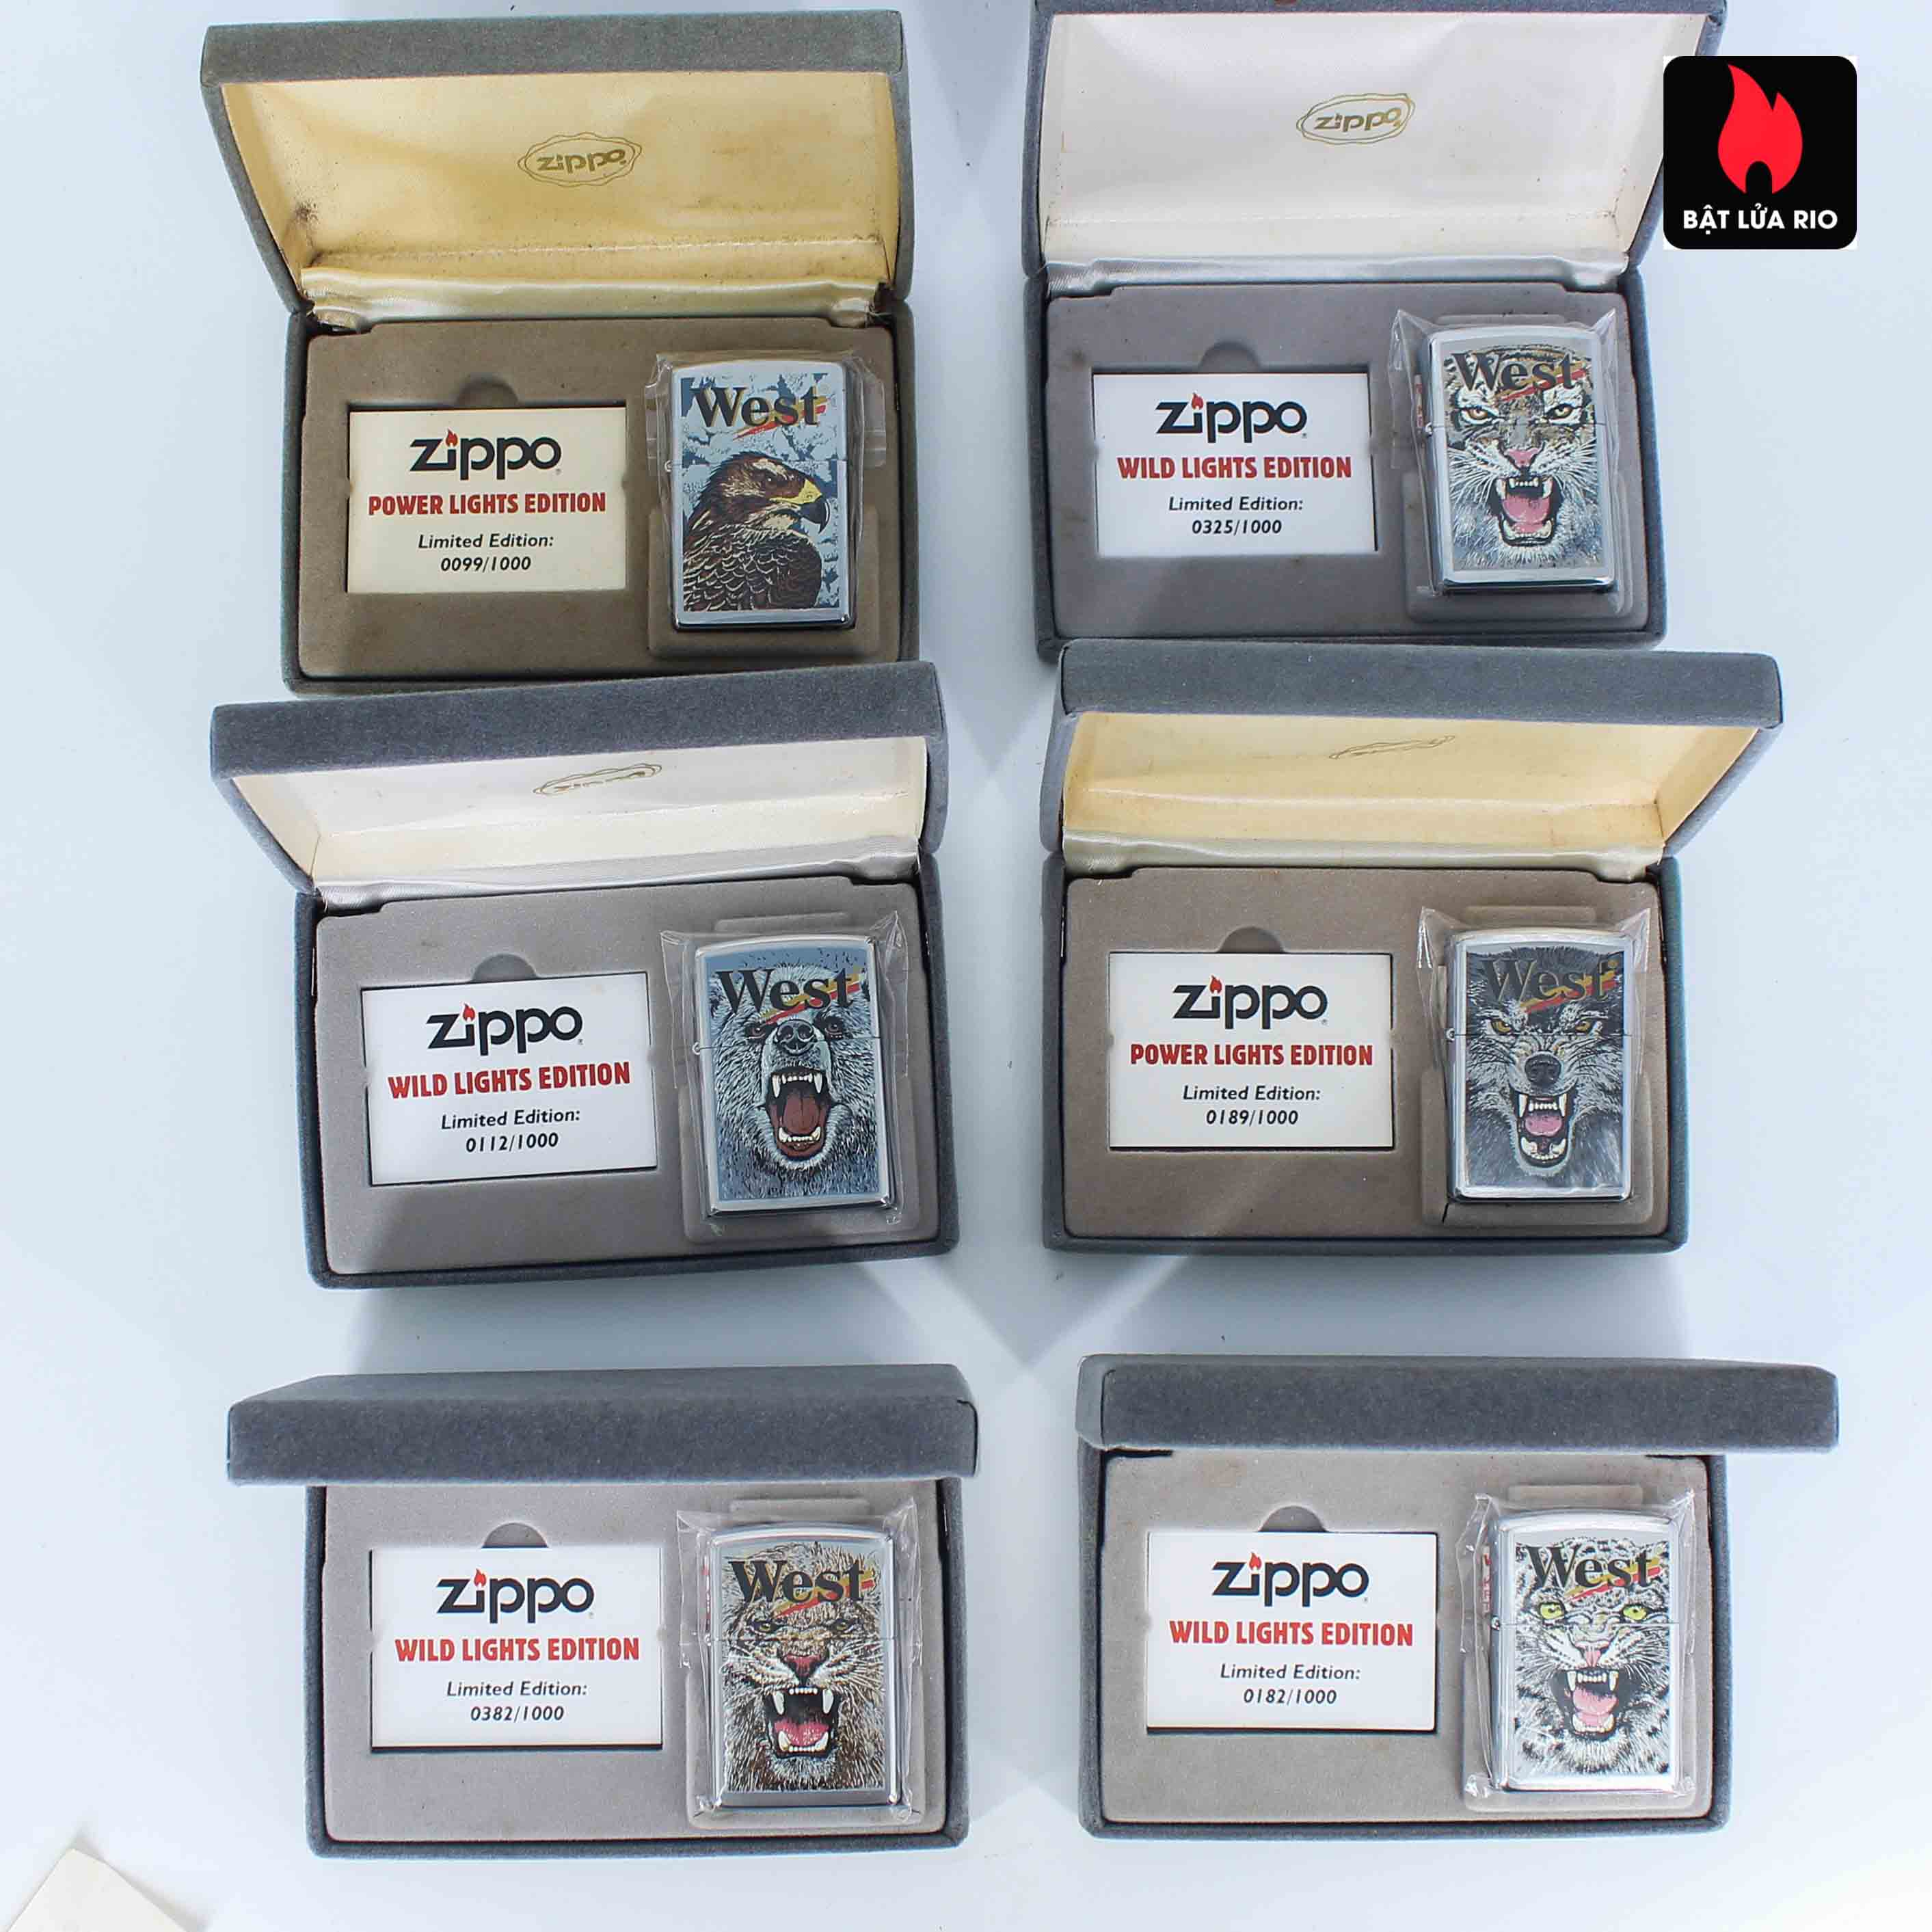 Zippo 2001 - Wild Lighters Edition - Limited Edition /1000